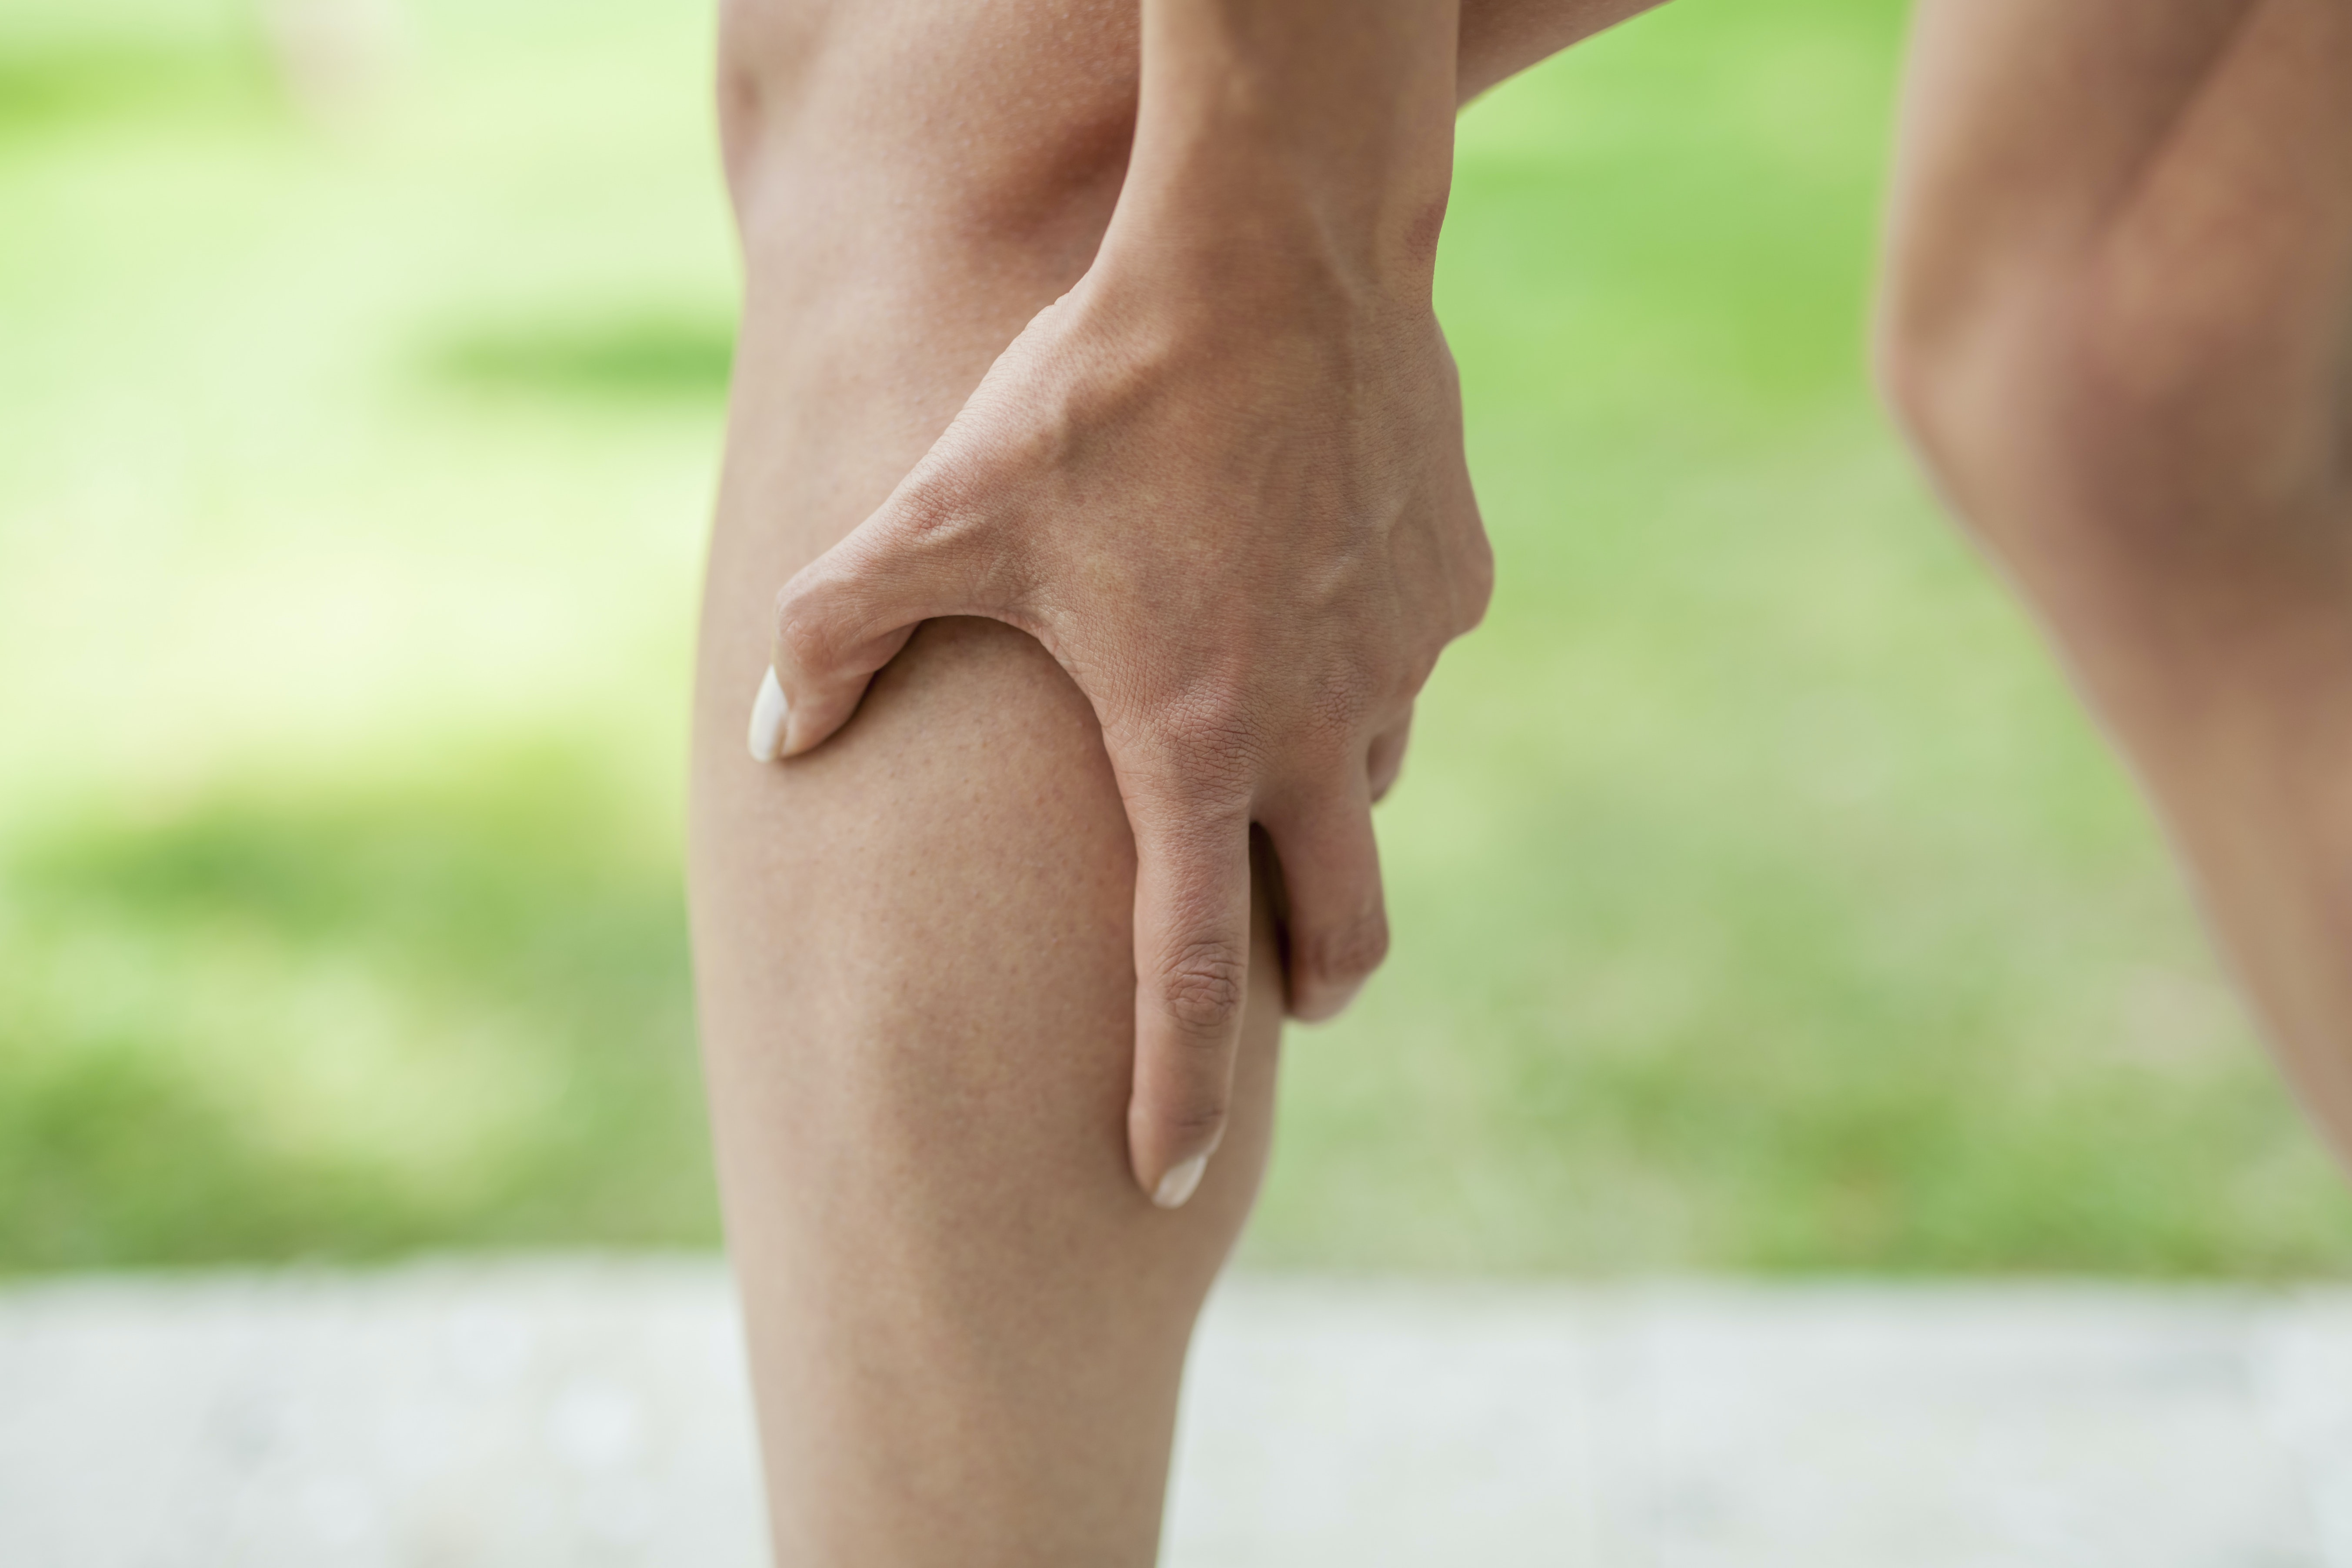 An image depicting a person suffering from pain in one calf symptoms